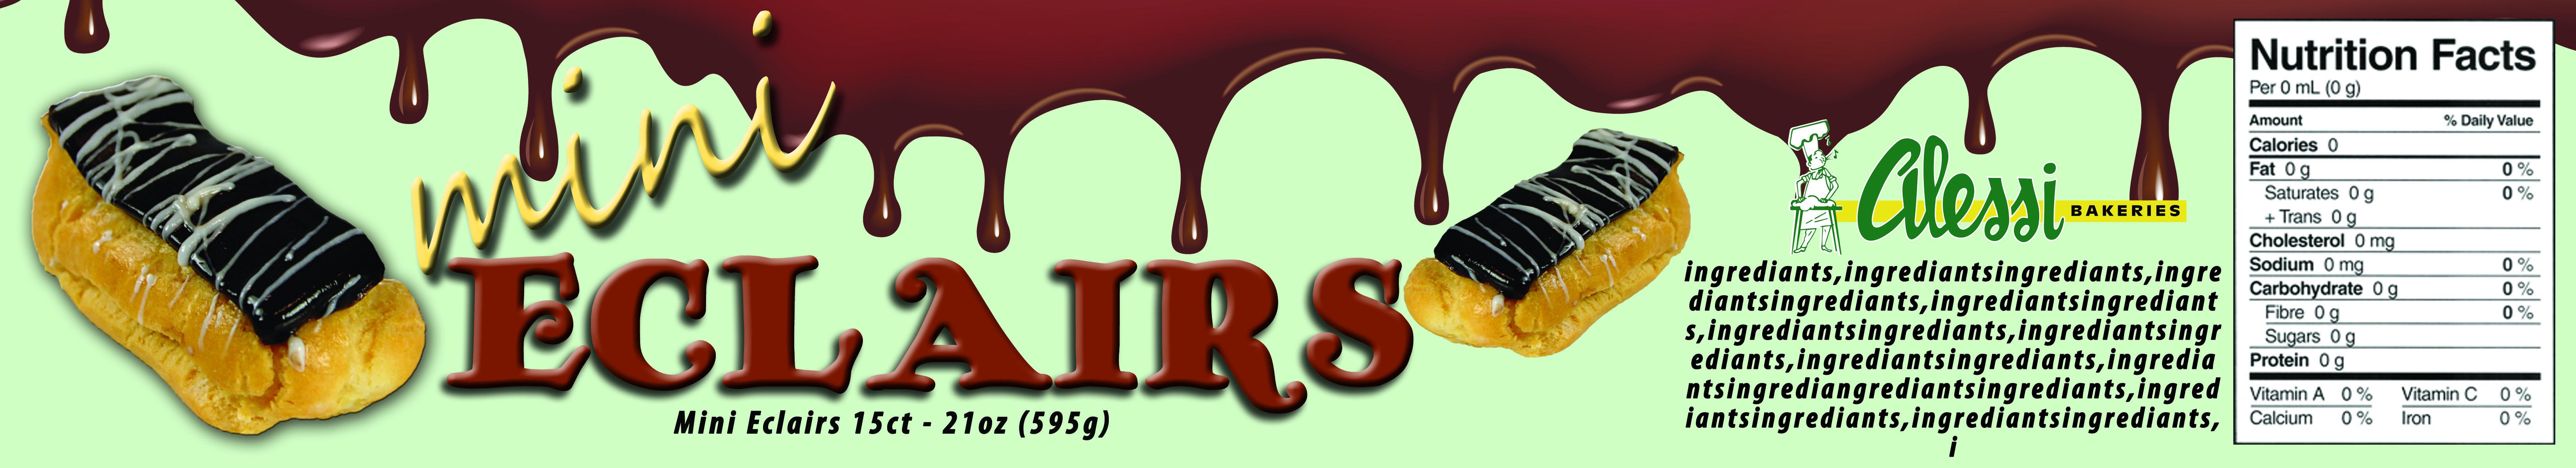 Alessi MINI ECLAIR LABEL.jpg